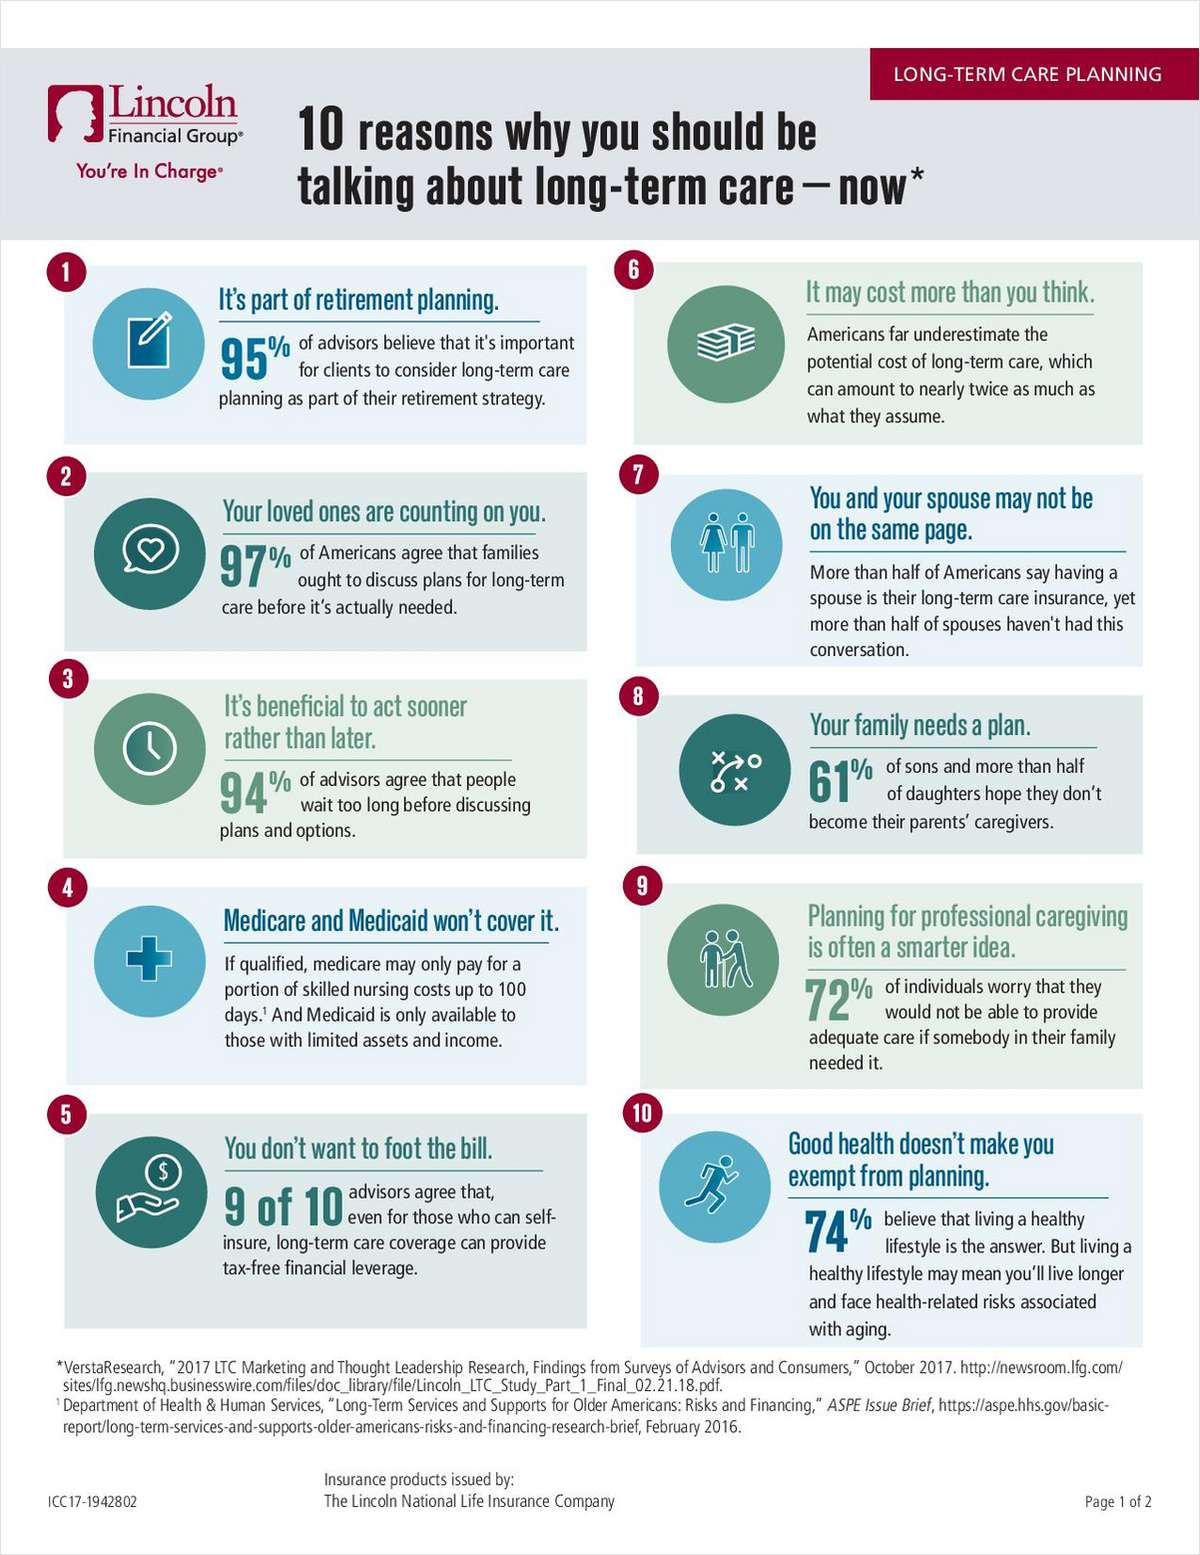 10 Reasons Why You Should Be Talking About Long-Term Care -- Now